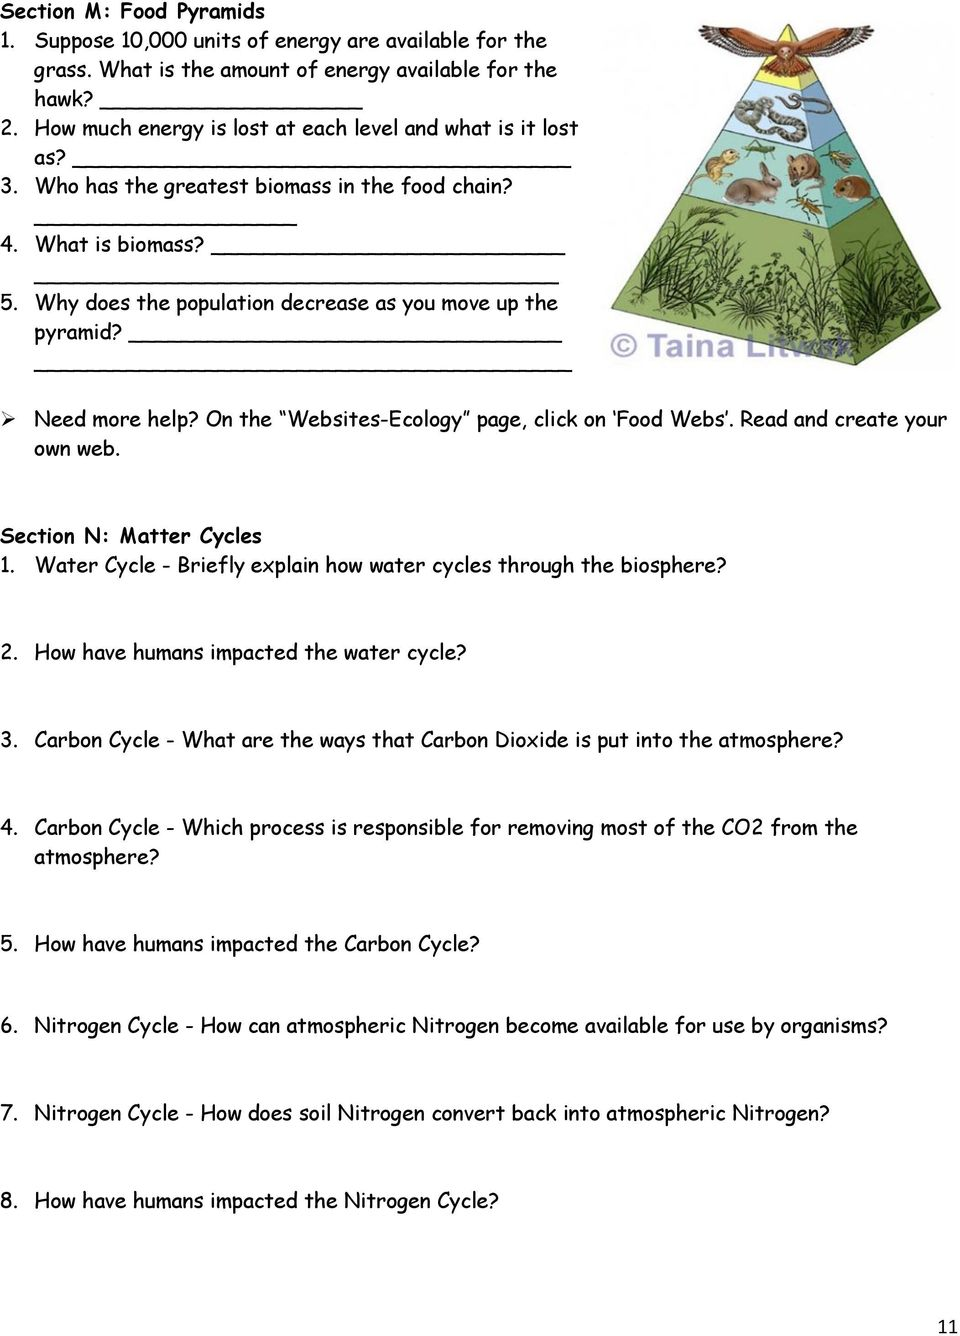 Need more help? On the Websites-Ecology page, click on Food Webs. Read and create your own web. Section N: Matter Cycles 1. Water Cycle - Briefly explain how water cycles through the biosphere? 2.